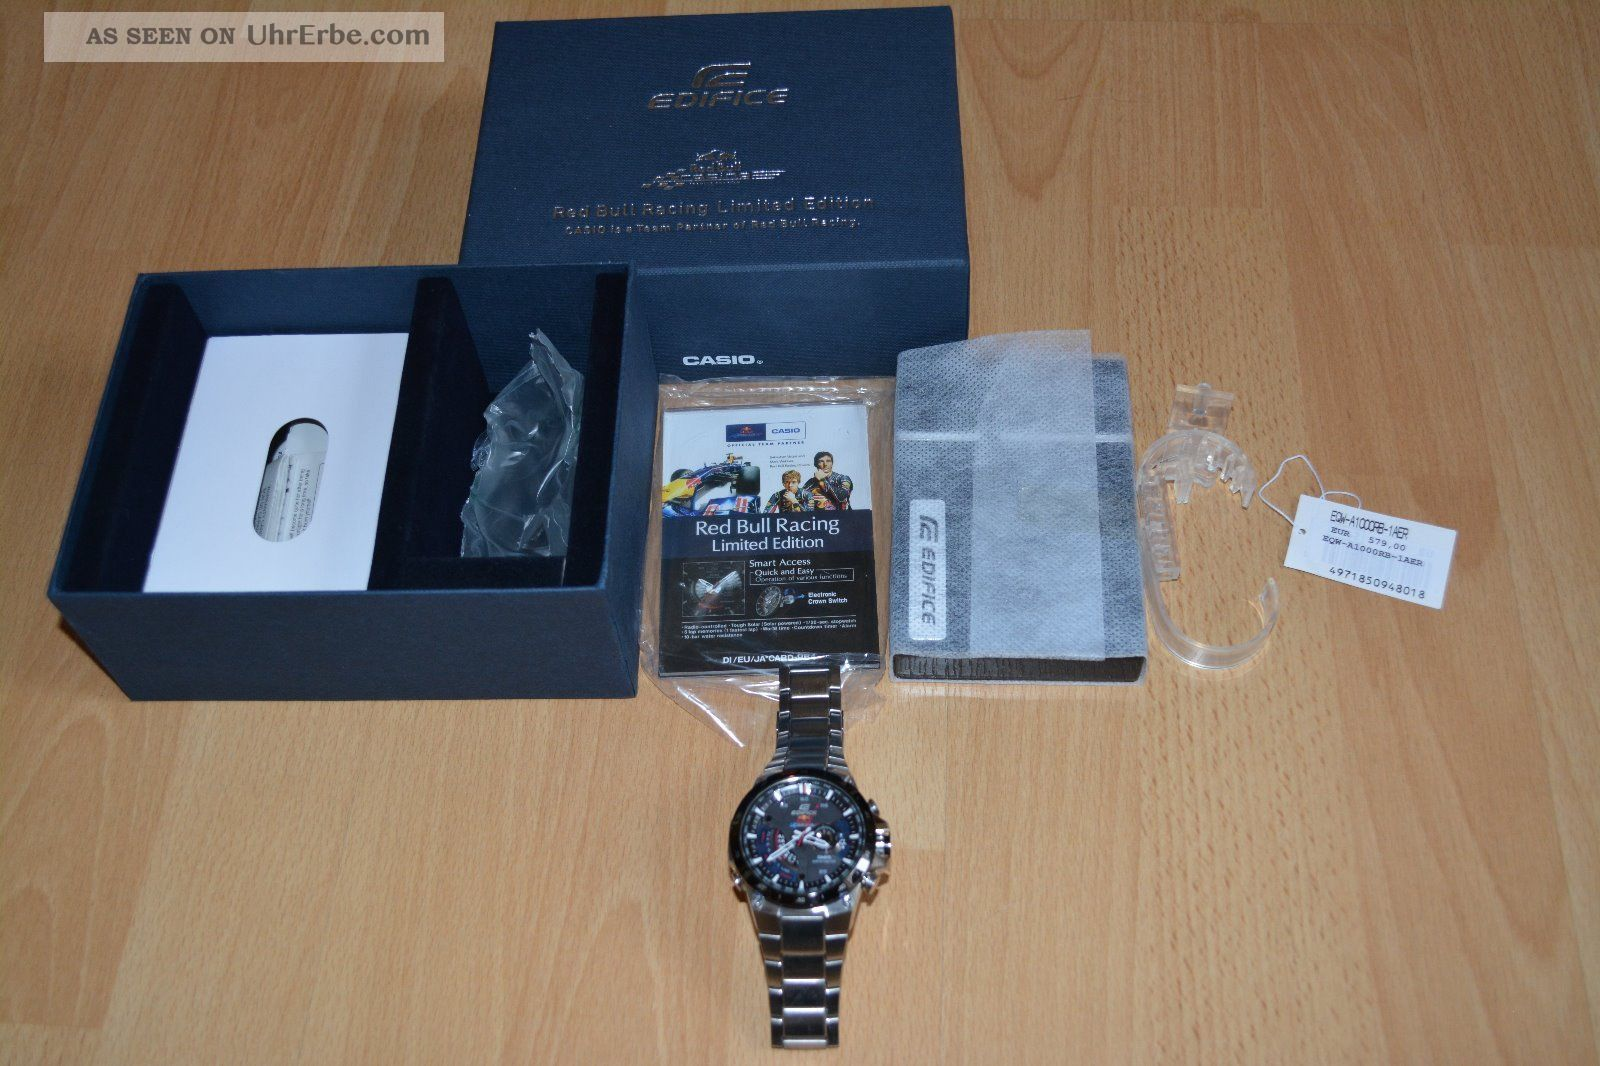 Casio Edifice Red Bull Limited Edition Alarm Chronograph Watch Eqw - A1000rb - 1aer Armbanduhren Bild